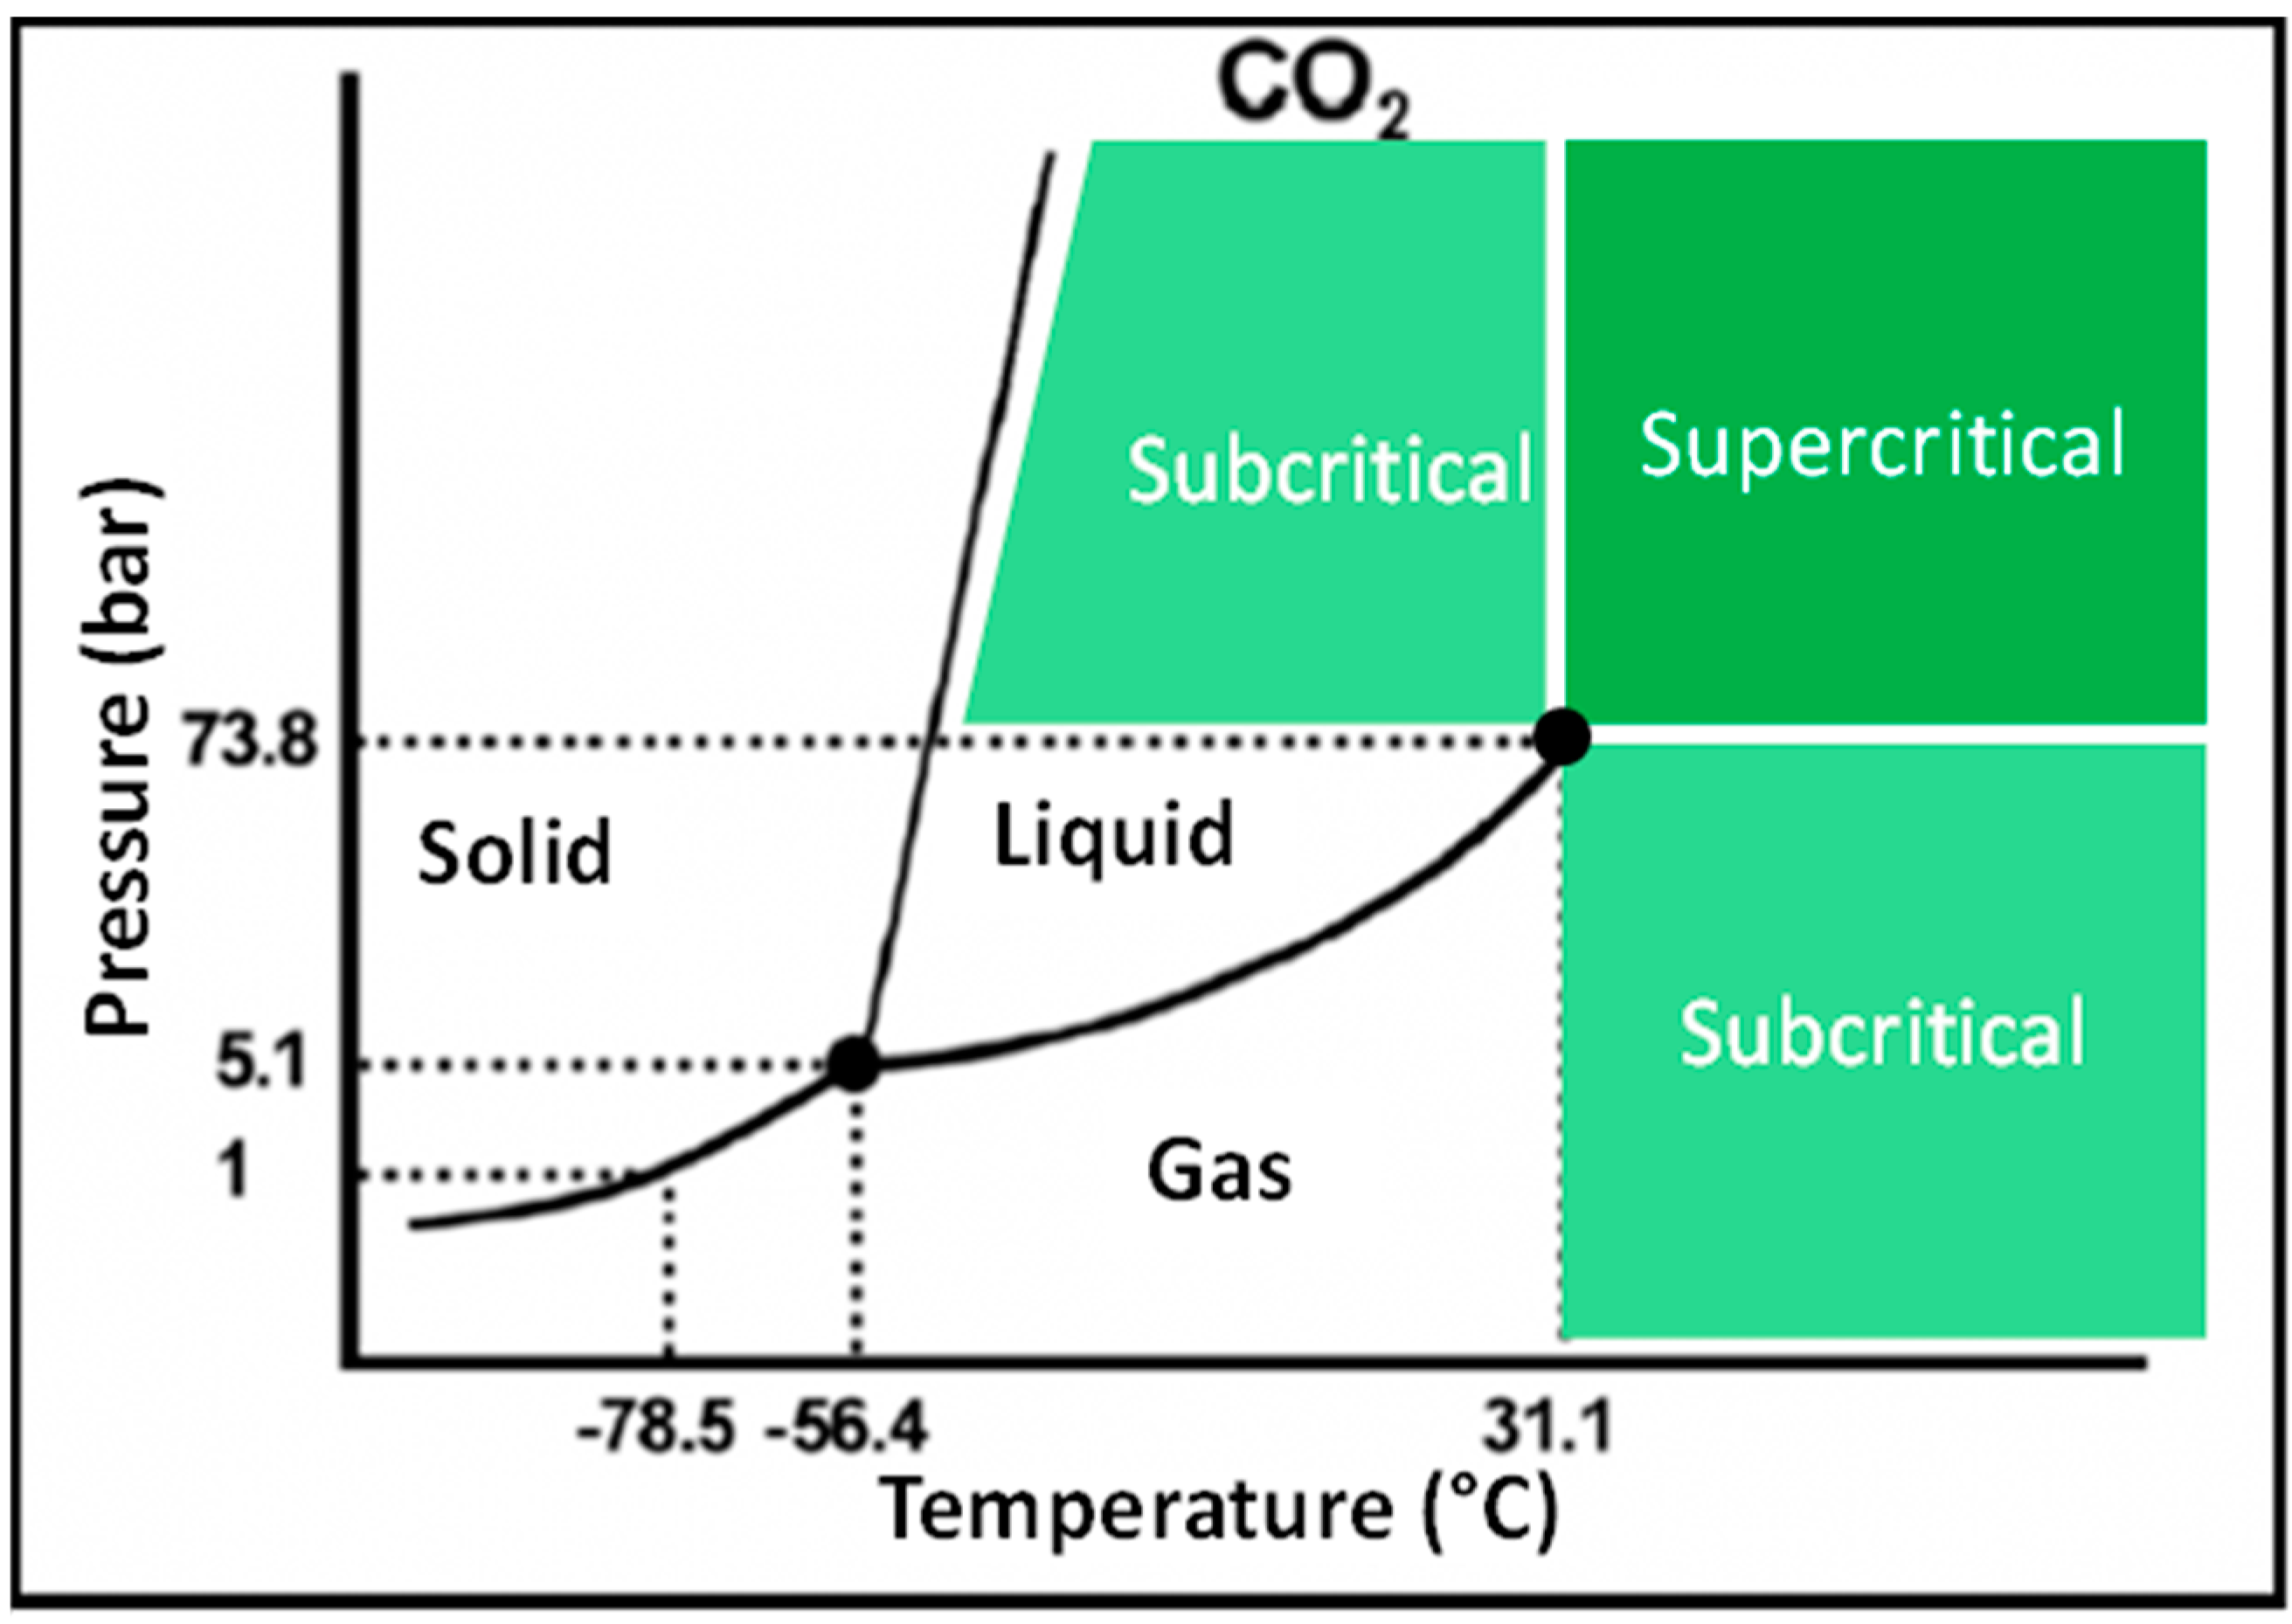 application of supercritical co2 in lipid Pharmaceutical applications of supercritical fluids michel perrut scope :  solutions) process [8] where supercritical carbon dioxide is used as a viscosity reducing agent, similarly to many spraying applications with different products  carriers (lipids, polymers) that can be treated open wide avenues for application.